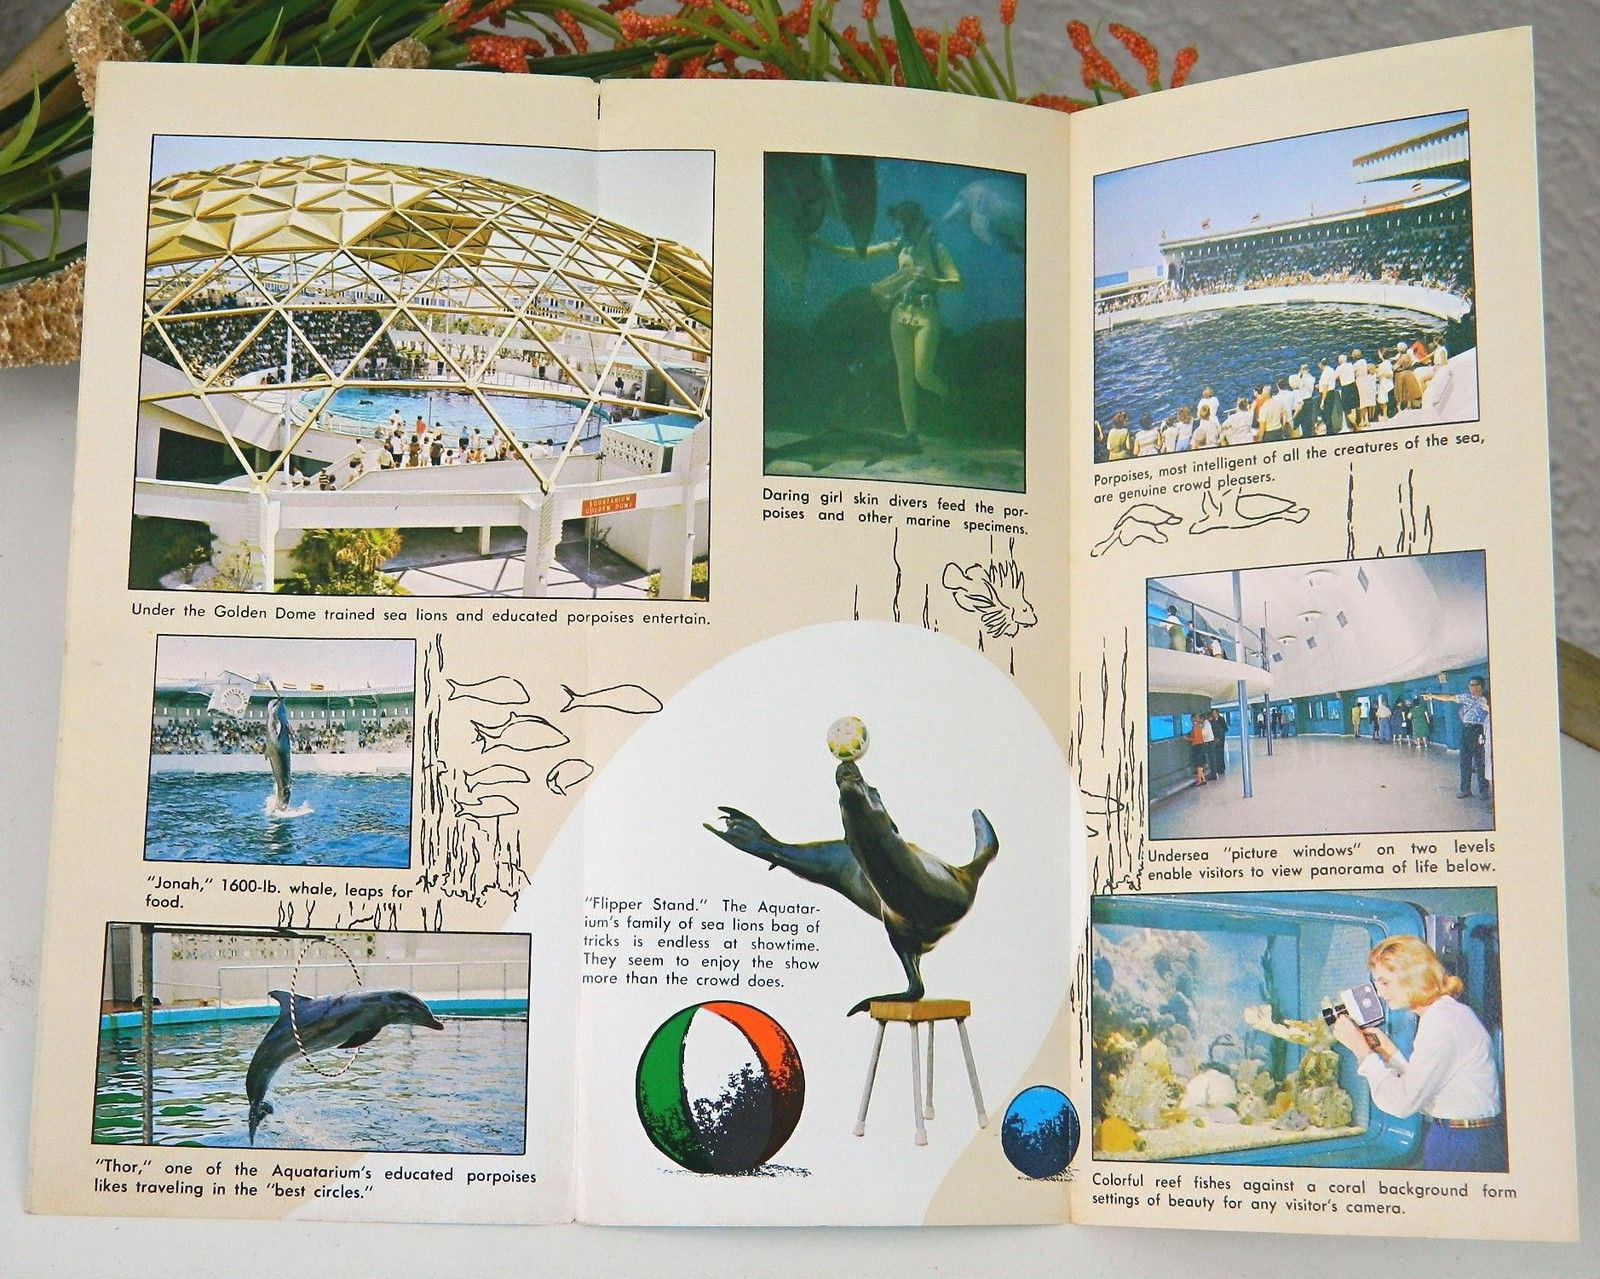 Vintage Aquatarium Brochure Aquarium St Pete Beach Florida 1960s Ephemera Souvenir Travel Memorabilia Tri Fold Marine Attraction Gulf Of